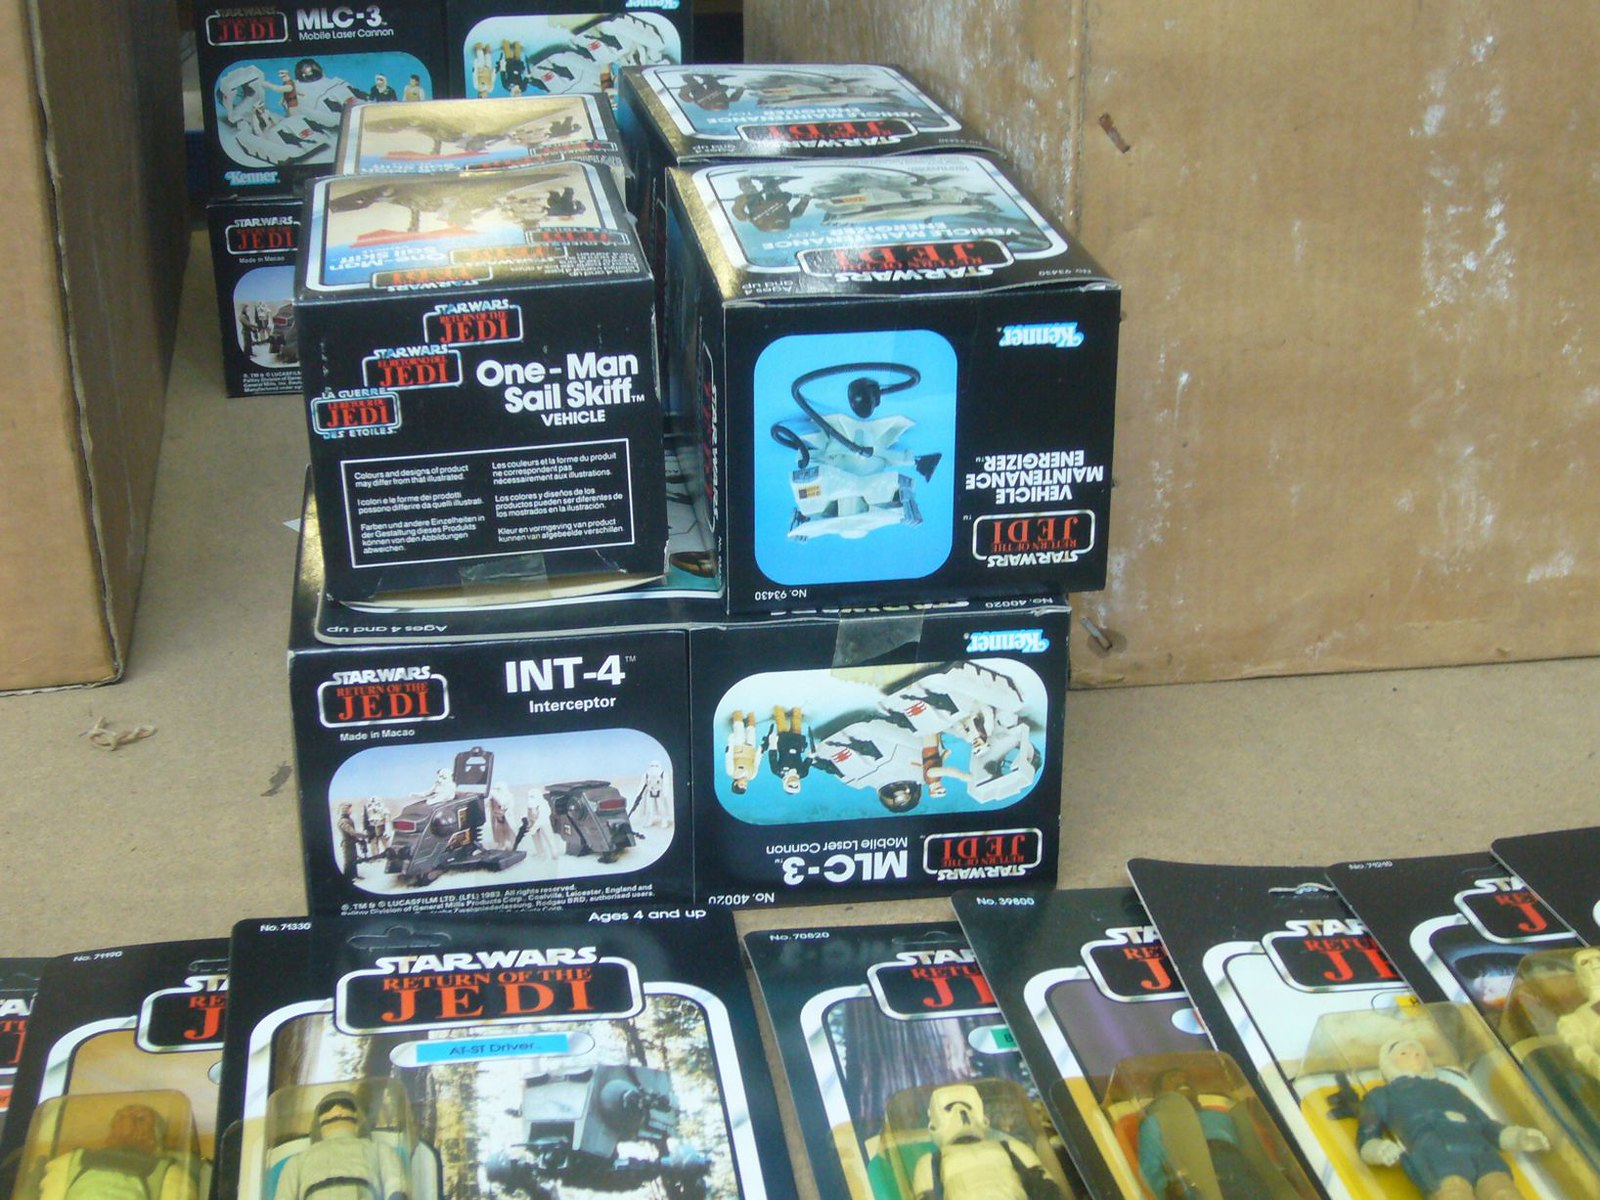 The Frank Beech retro toy shop - Star Wars Return of the Jedi action figures and Mini Rigs